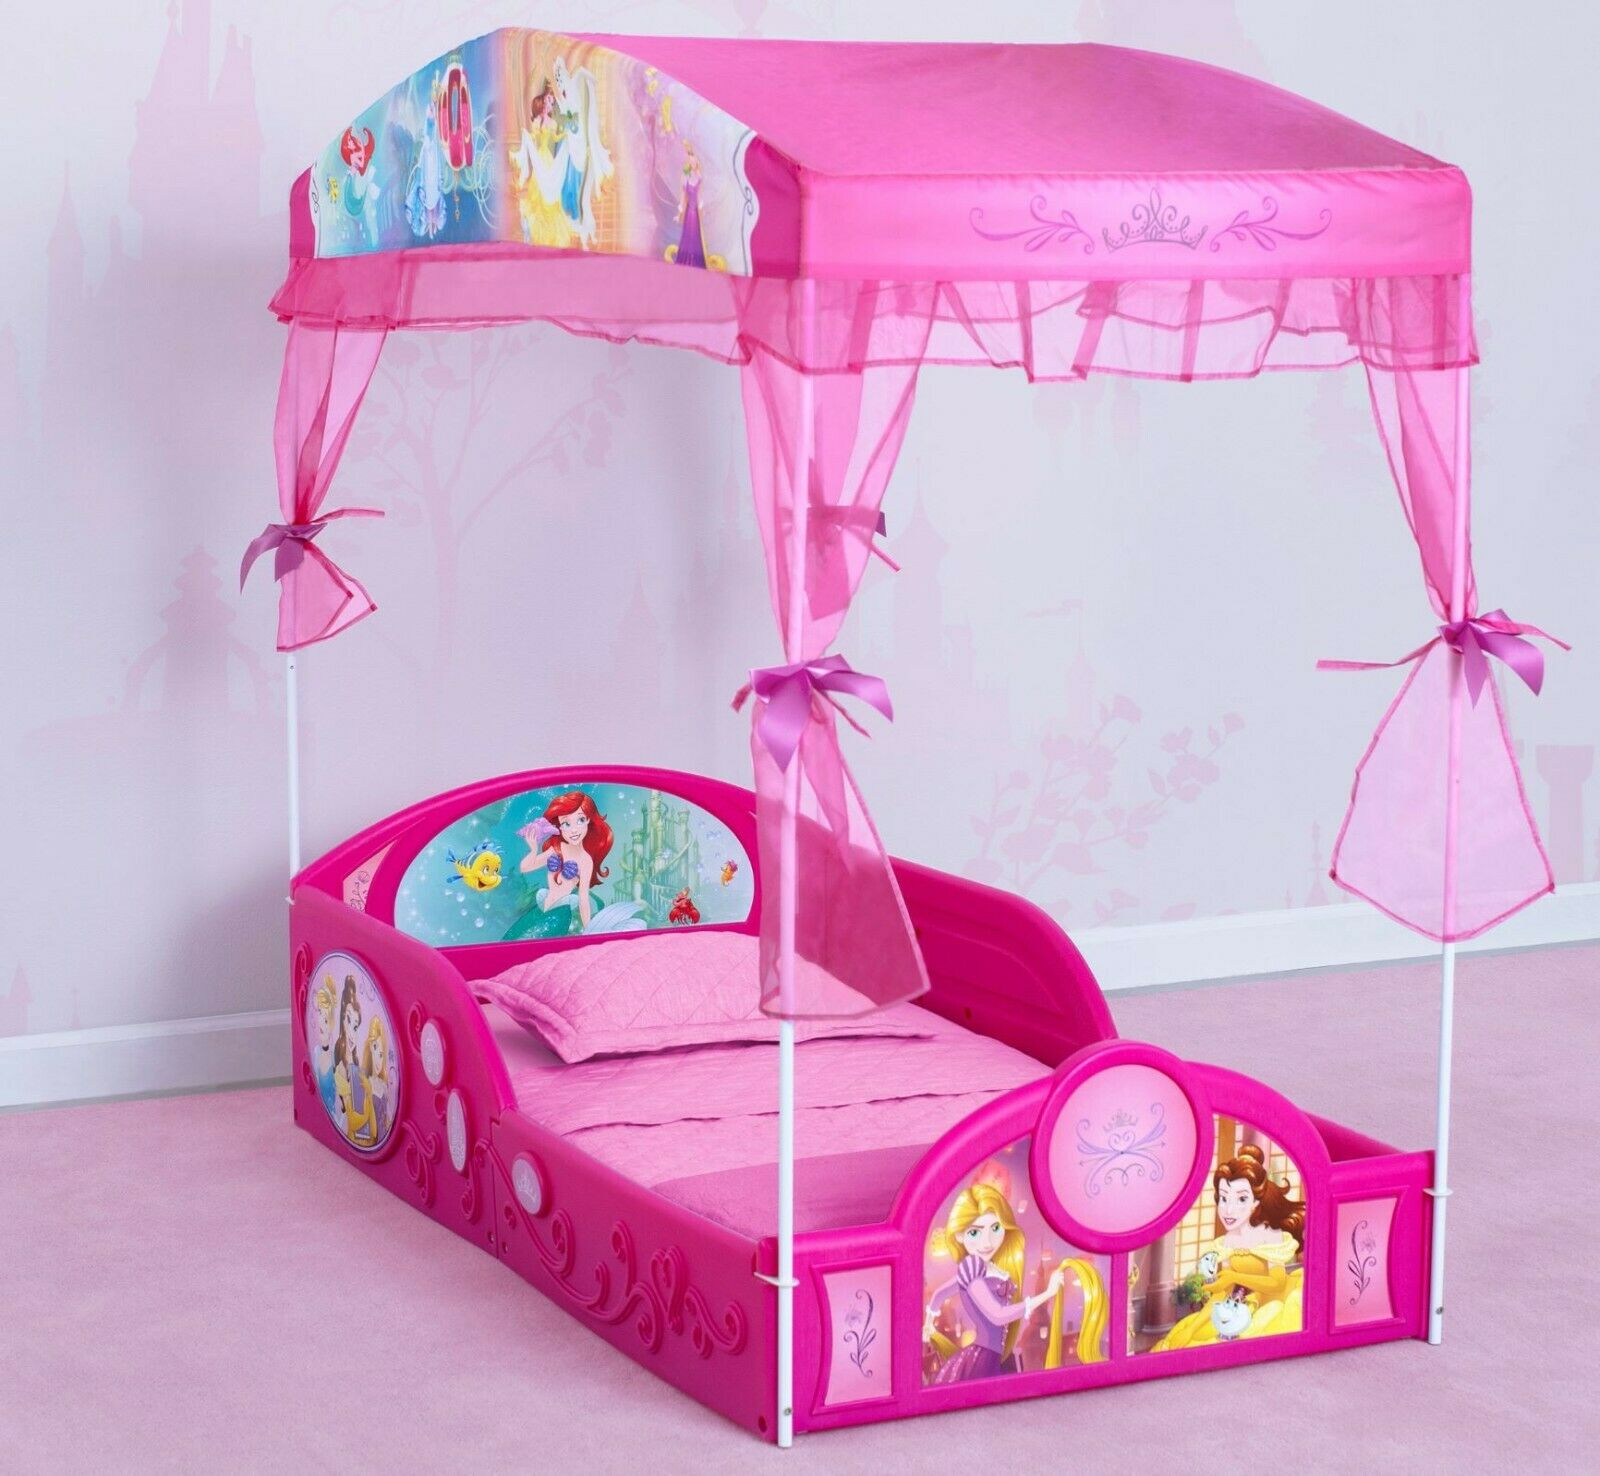 5 Piece Toddler Disney Princess Bed Bedroom Set Furniture Girls Toy Box Table For Sale Online Ebay